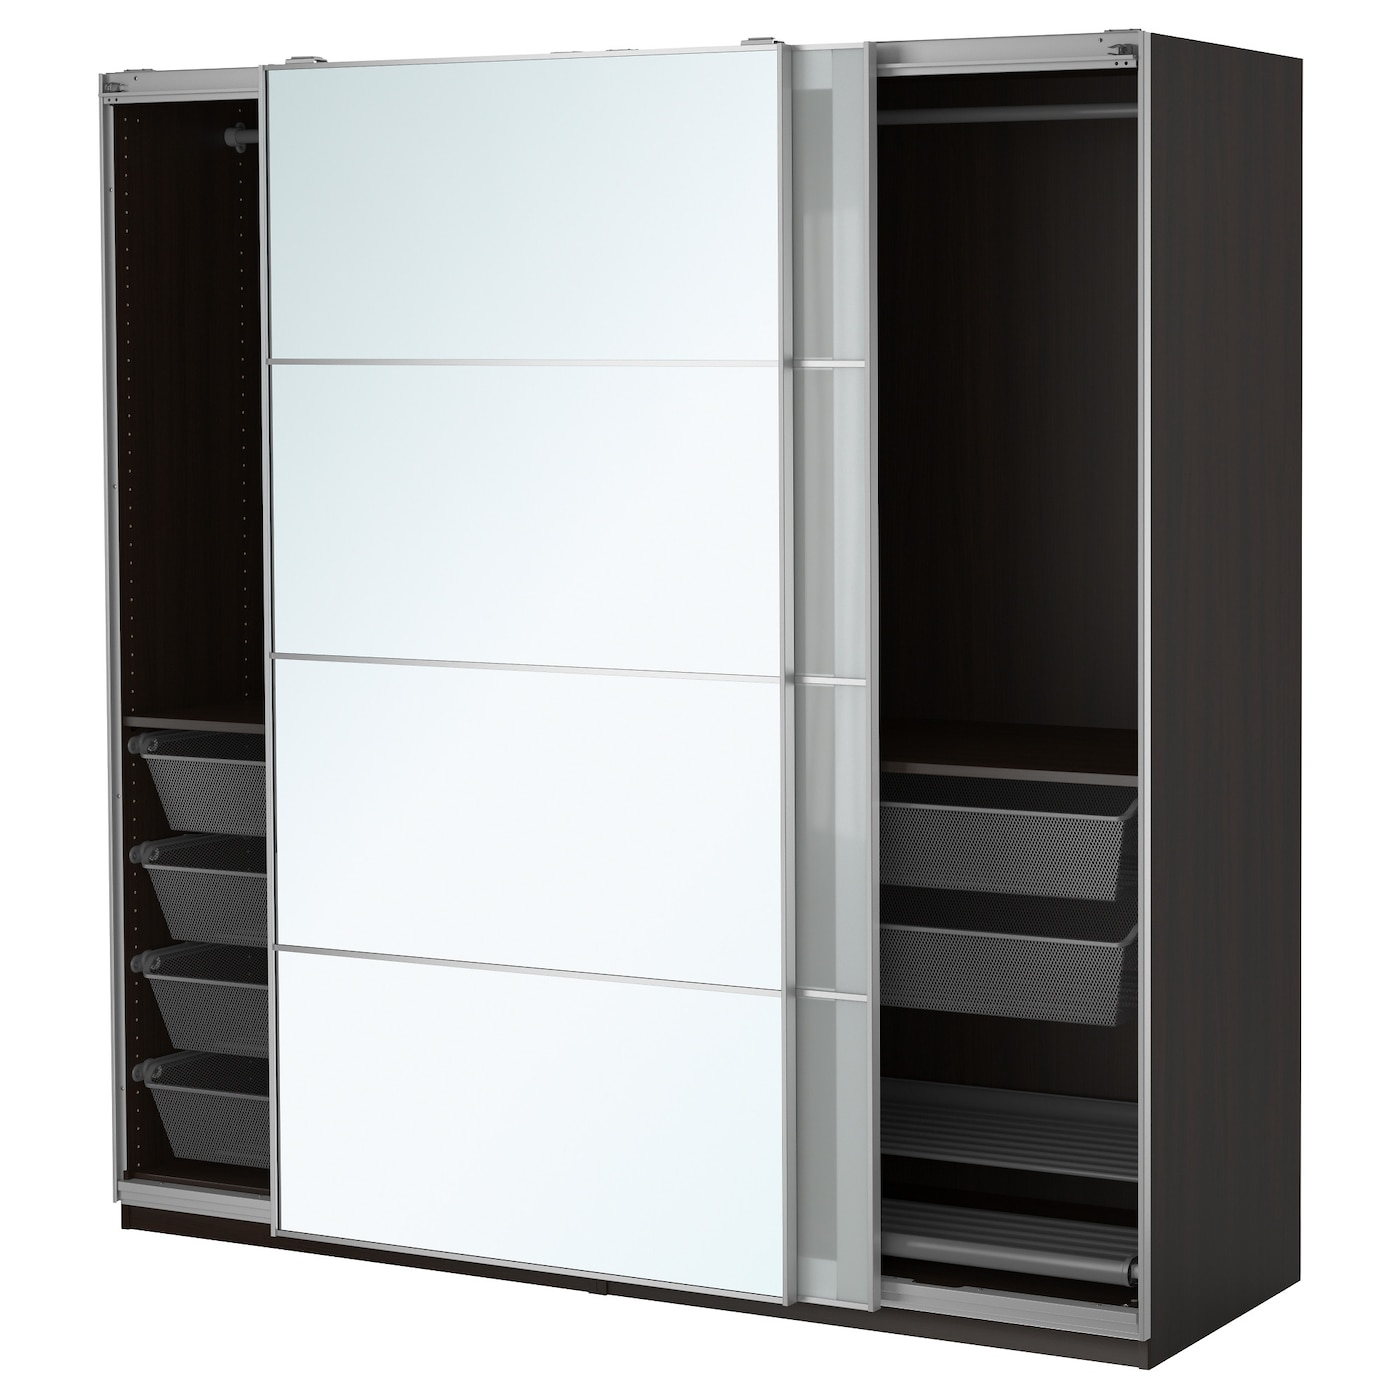 pax armoire penderie brun noir auli sekken 200 x 66 x 201 cm ikea. Black Bedroom Furniture Sets. Home Design Ideas